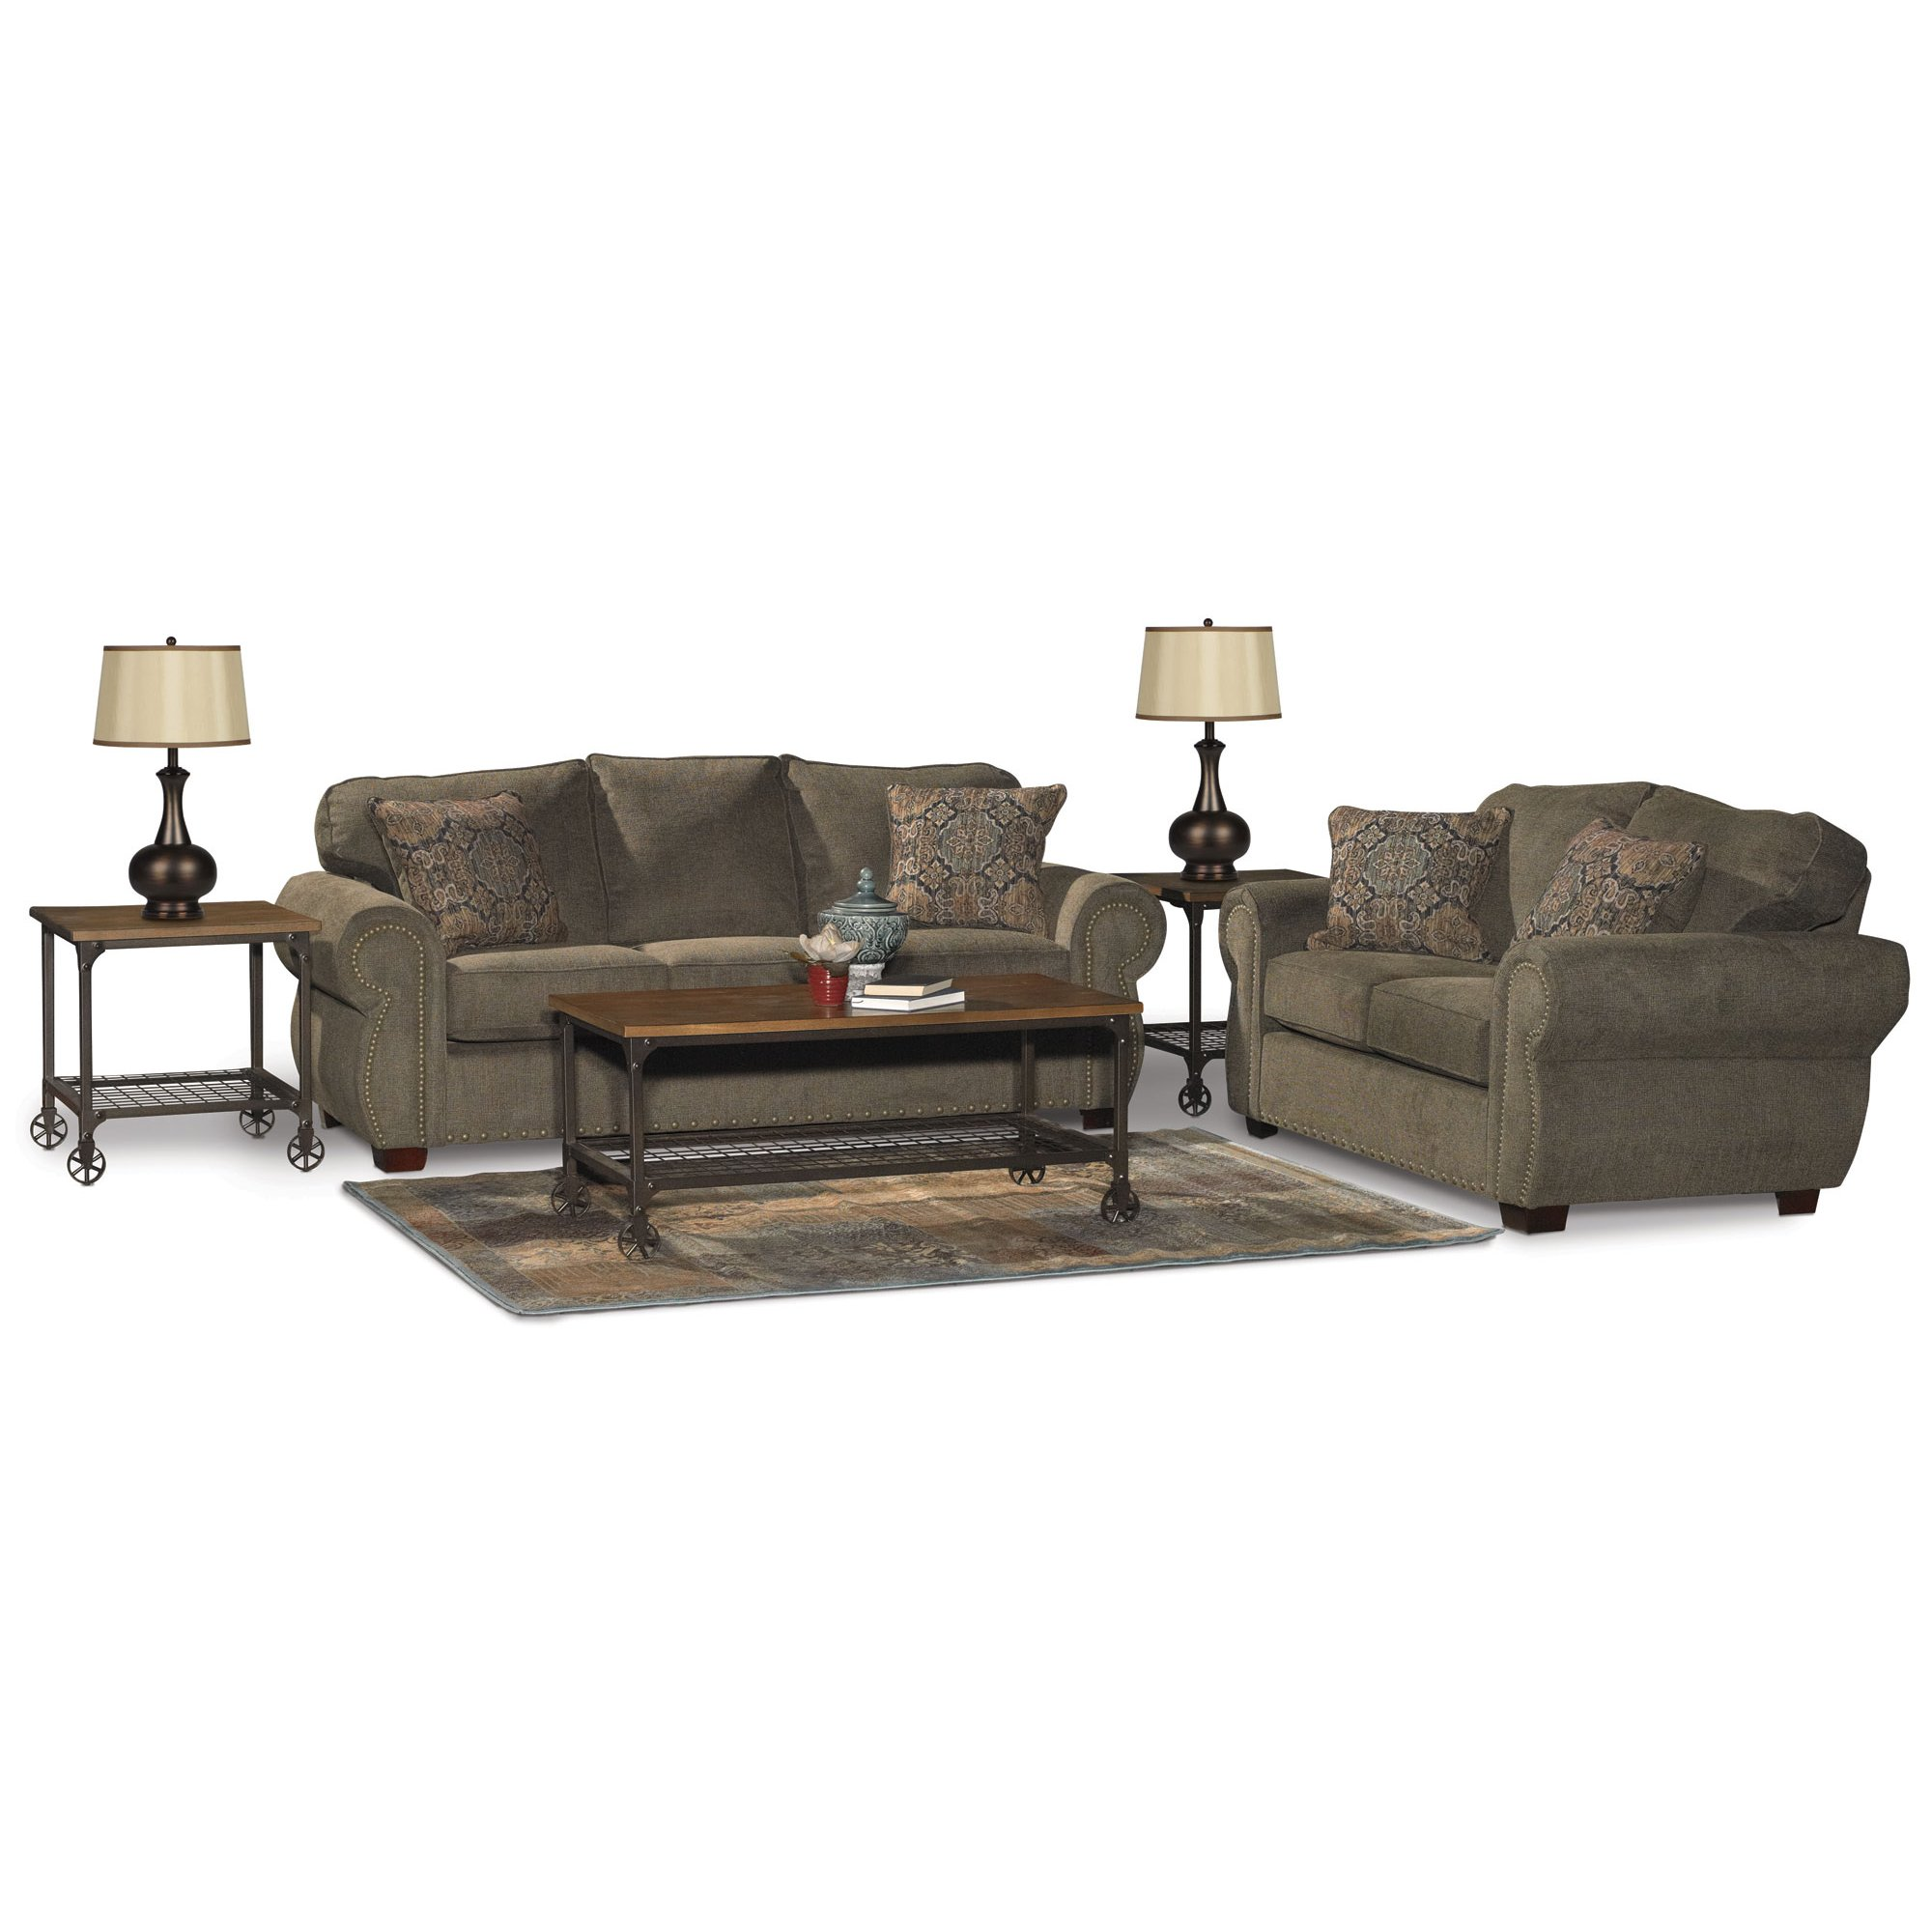 Traditional Coffee Sofa Bed 7 Piece Living Room Set - Southport | RC ...